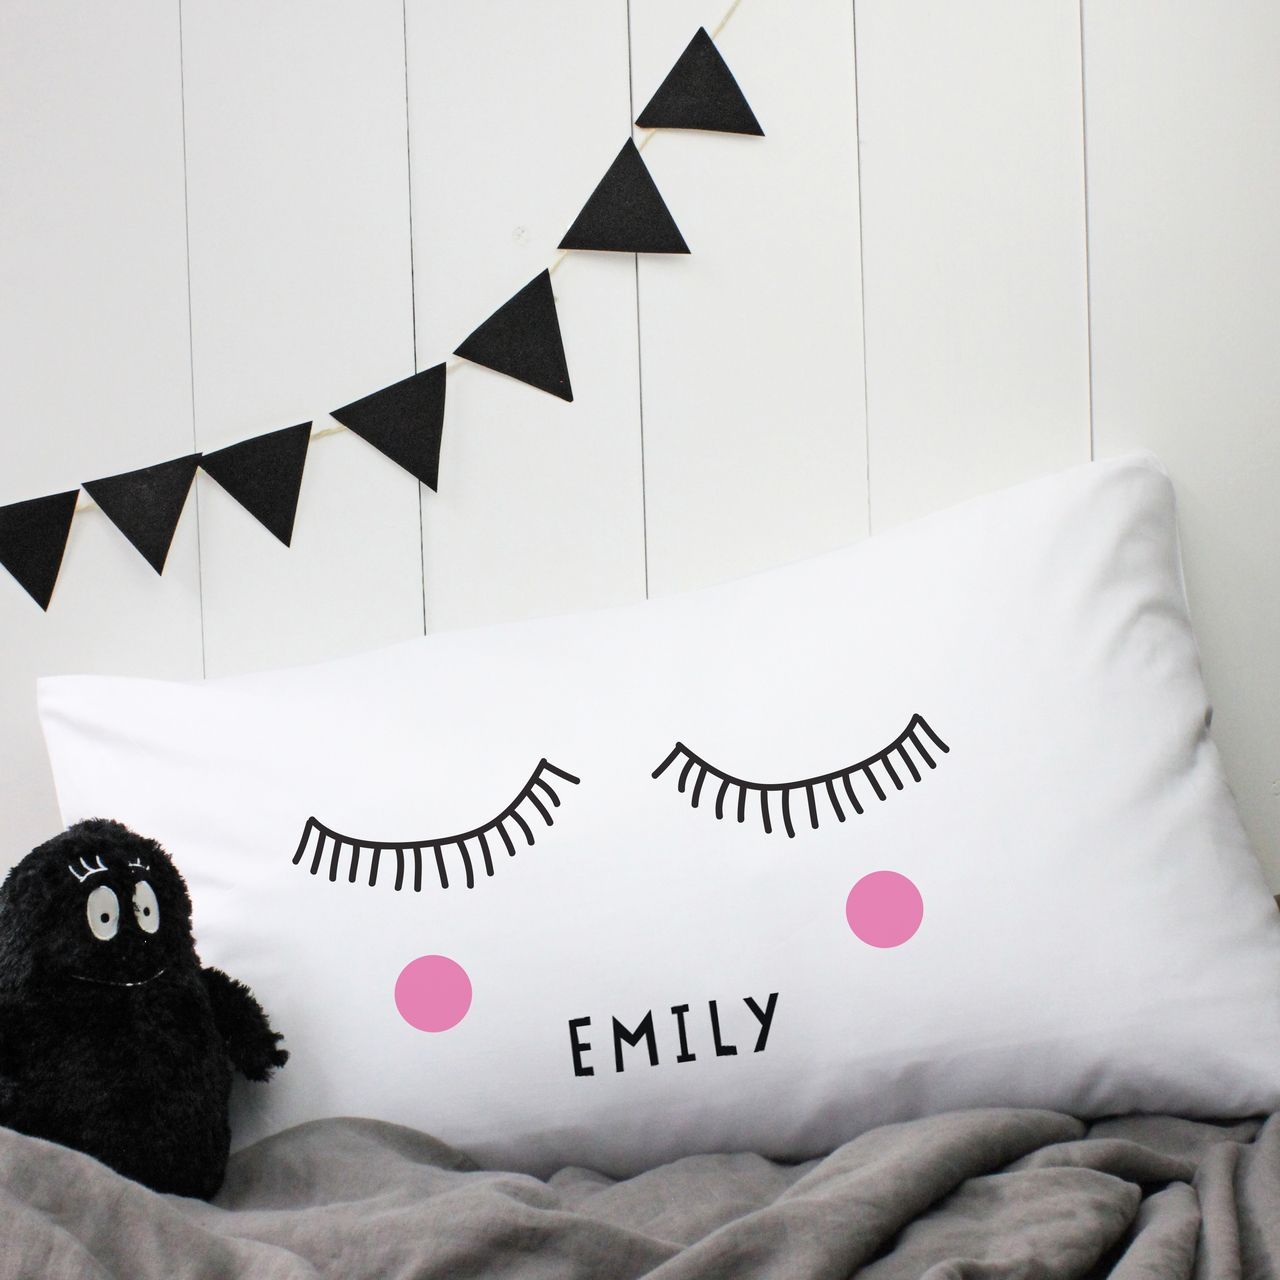 Uncategorized Unique Pillowcases personalised sleepy eyes pillow case cases and pillows case